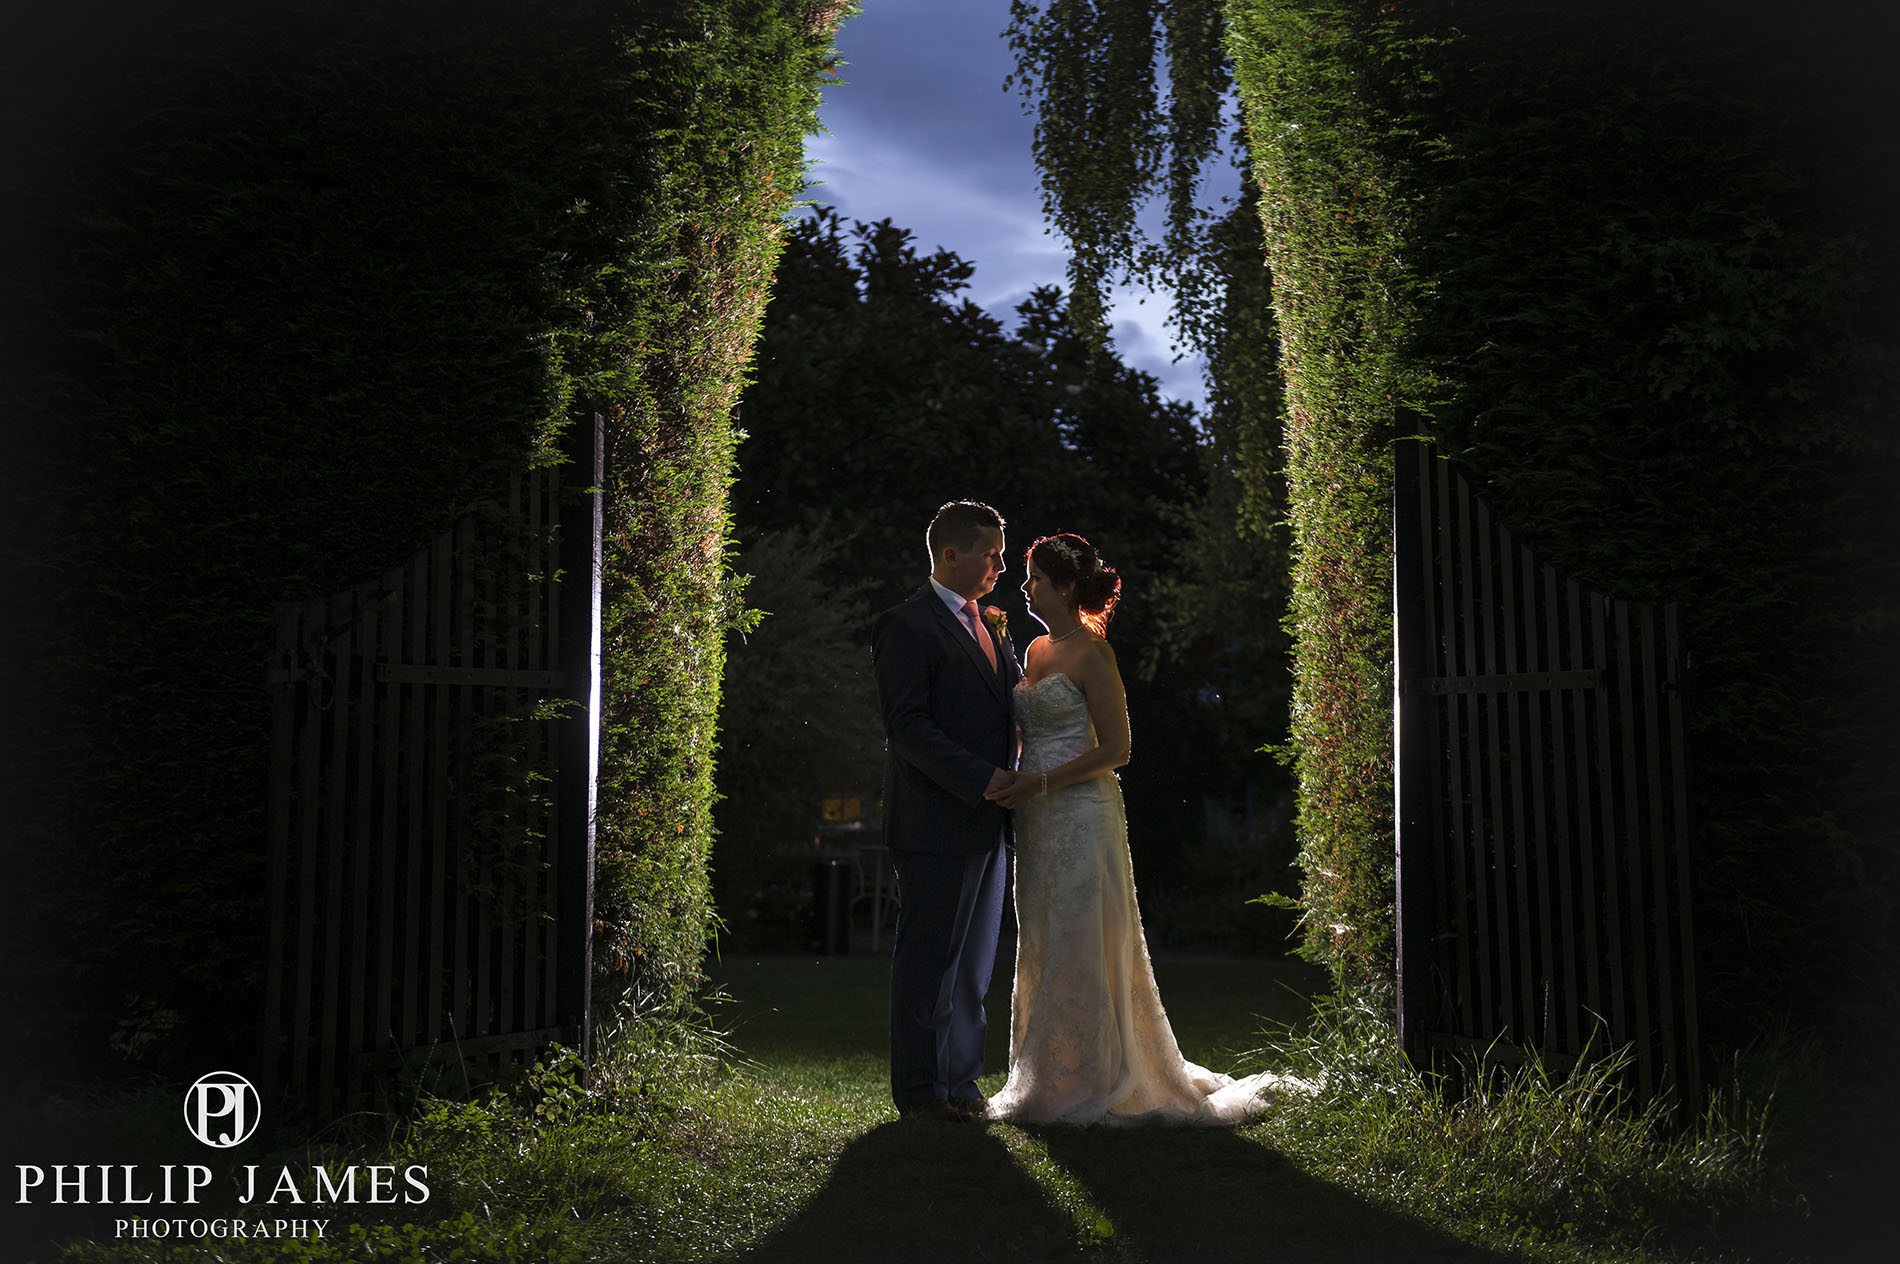 Philip James specializing in Wedding Photography Birmingham - Moments (166 of 170)